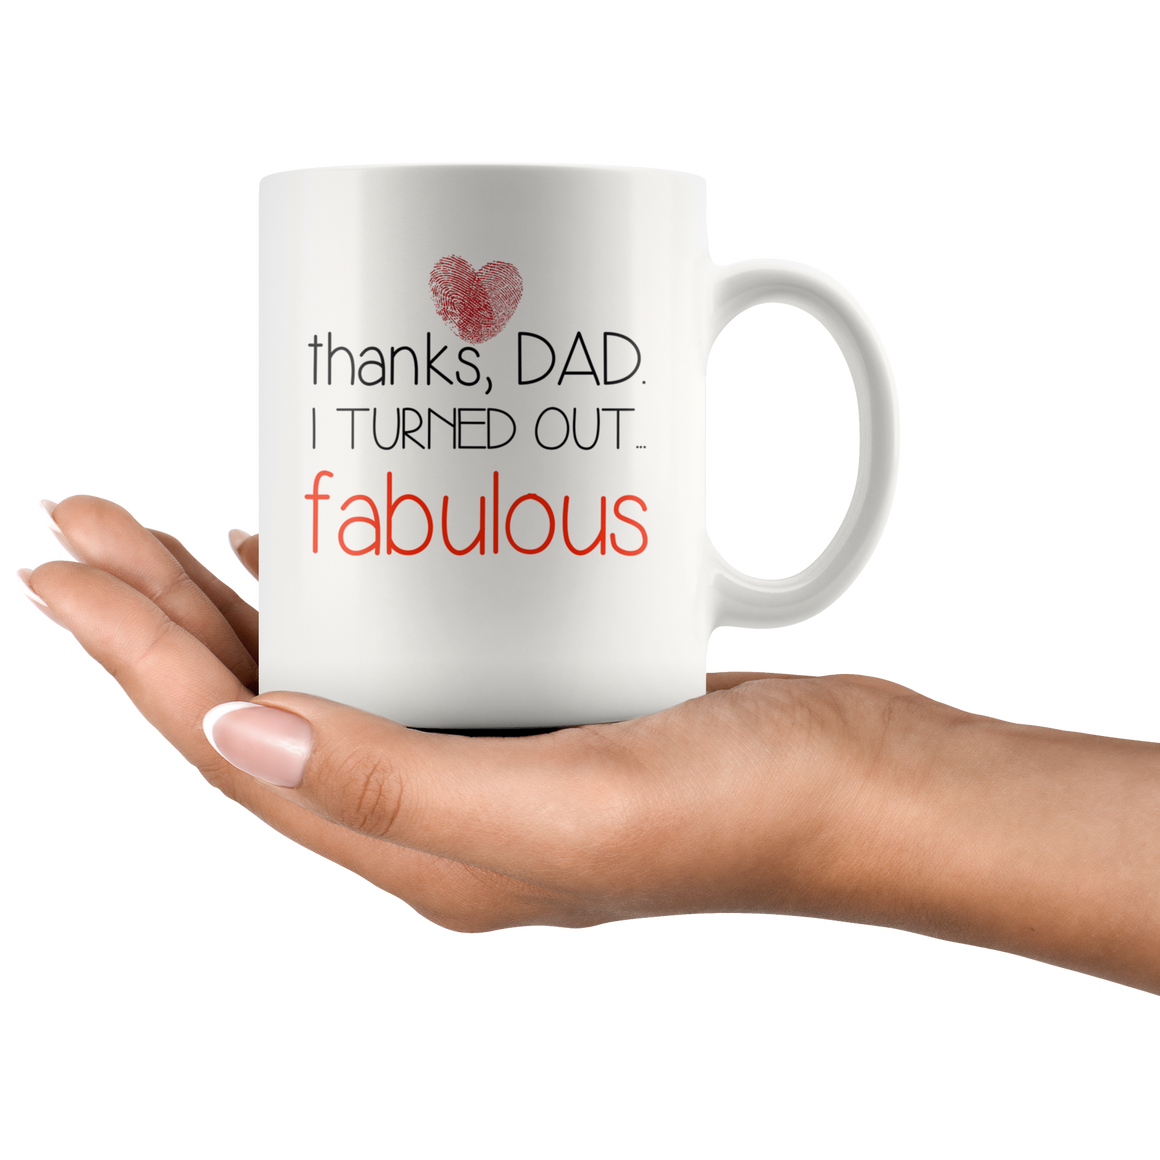 Thanks DAD I turned out fabulous coffee mug gift